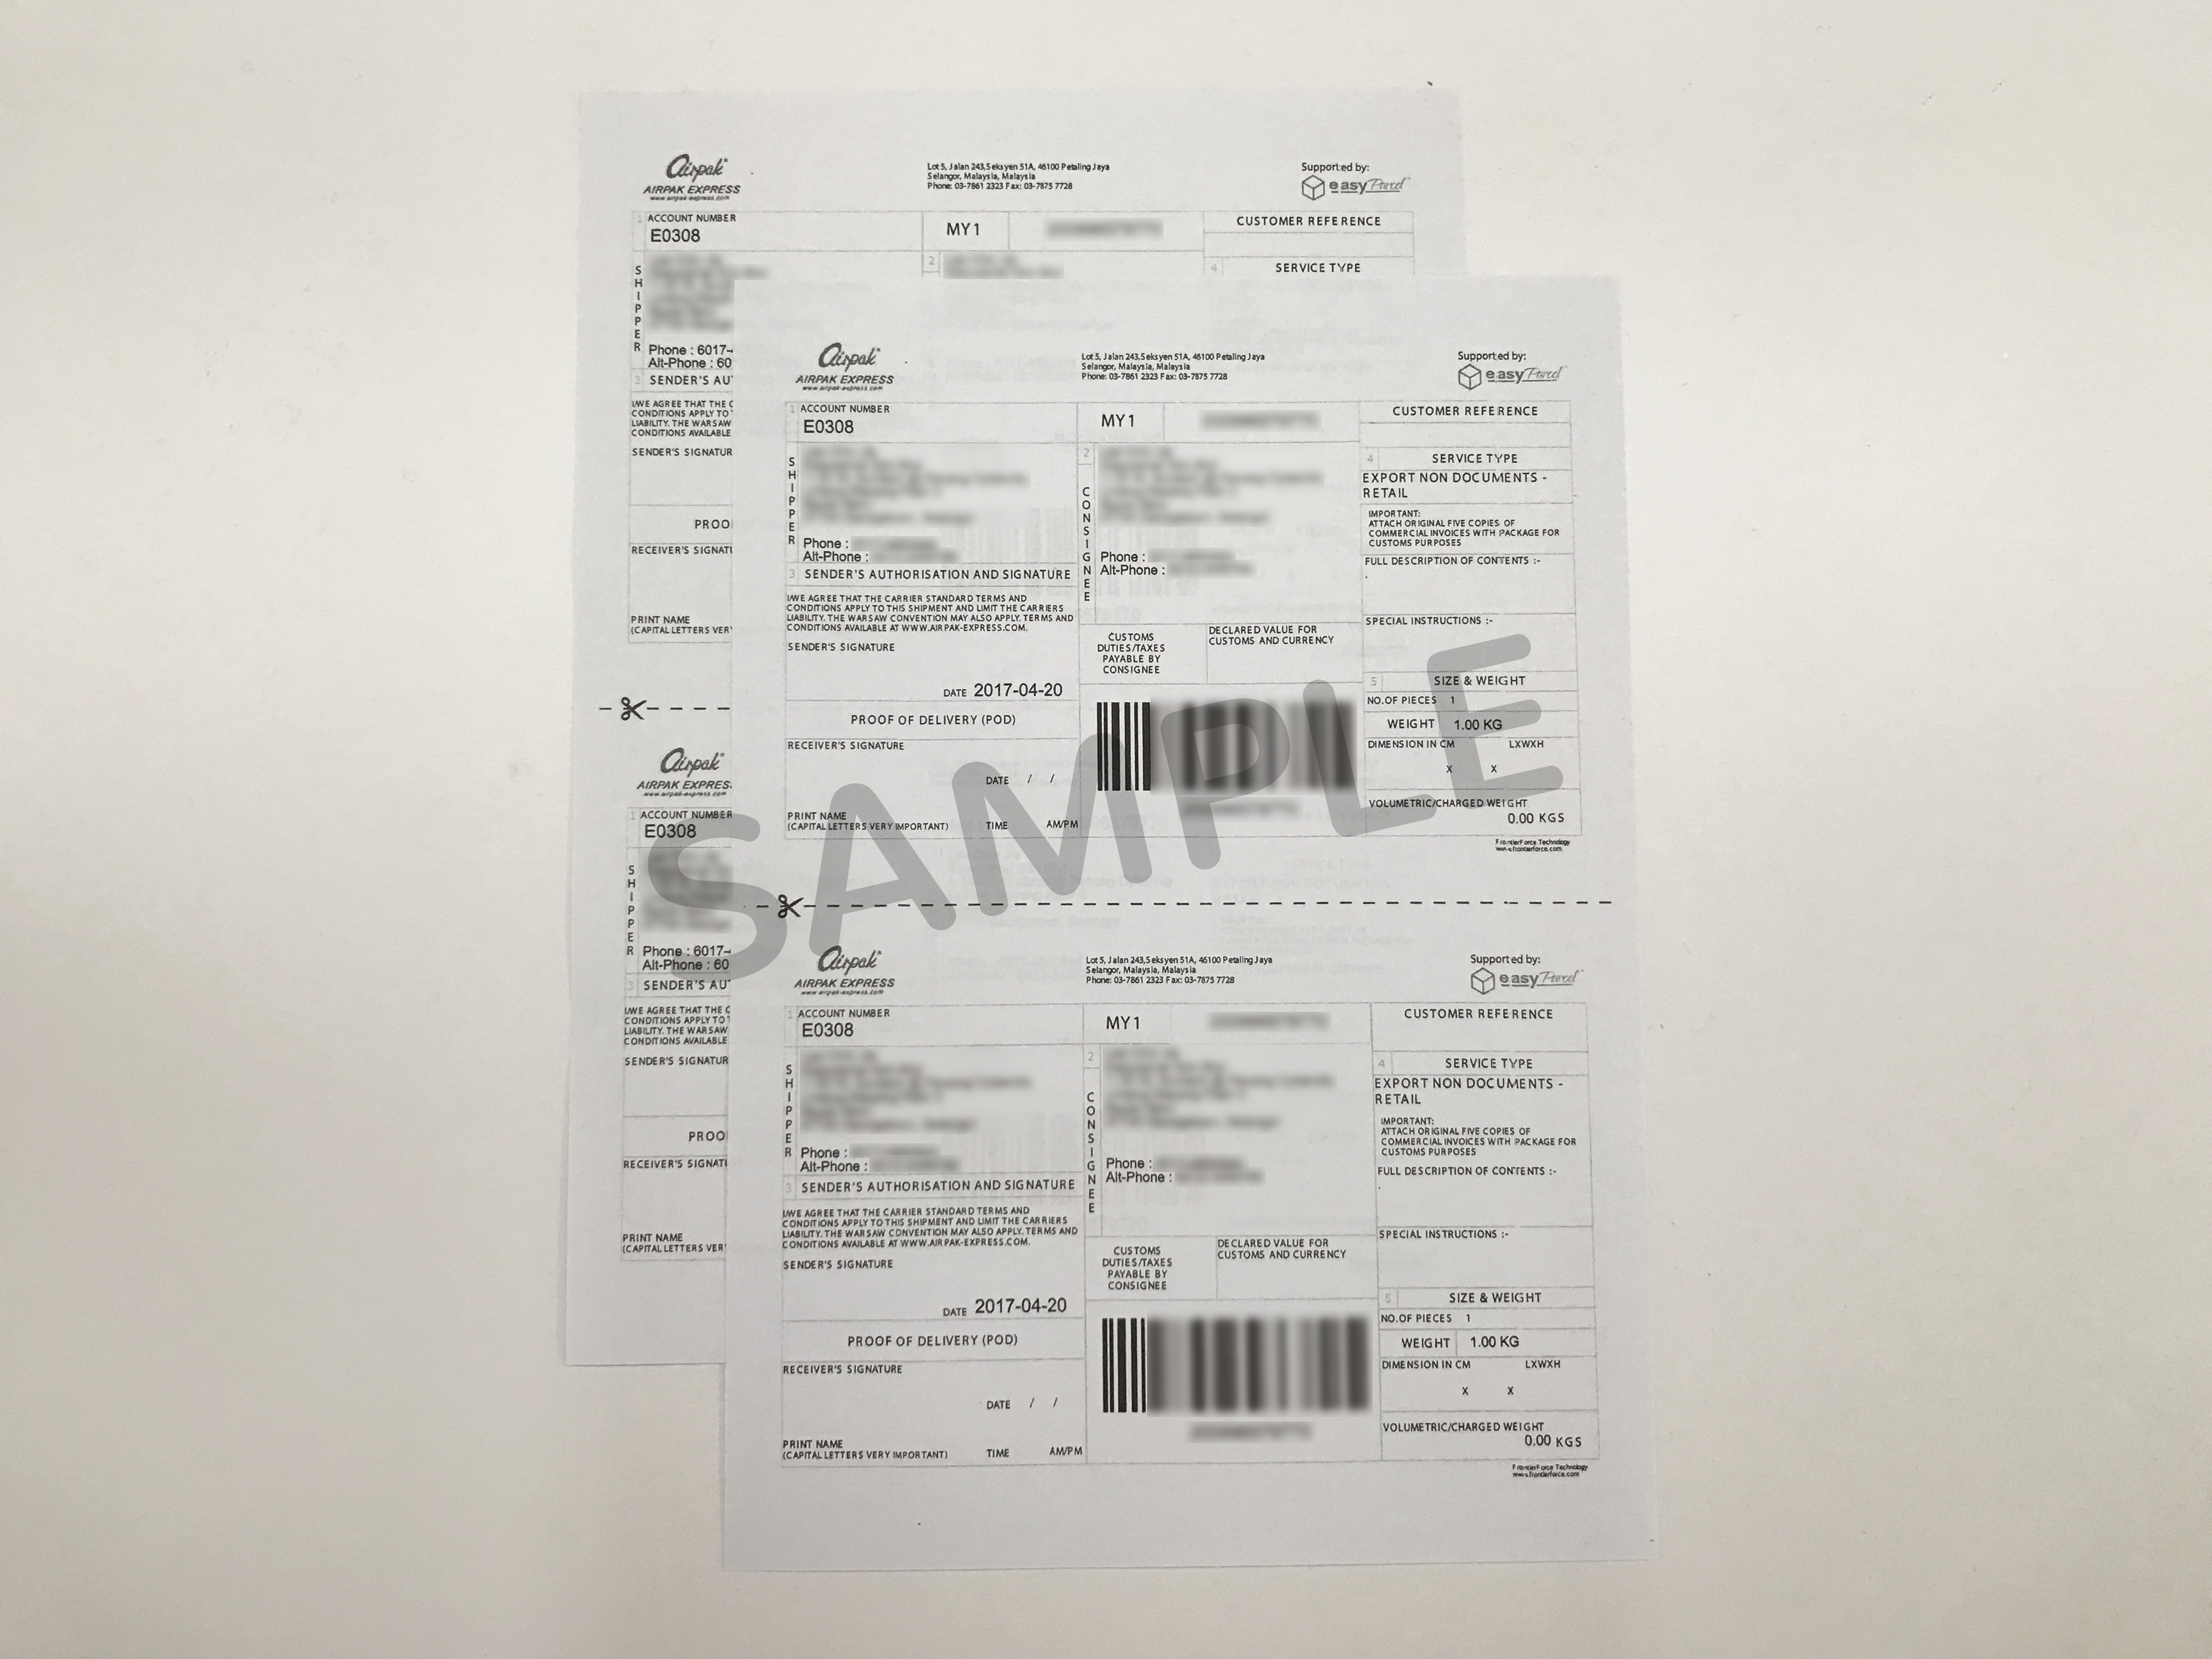 How To Attach The Air Waybill After Printing It Out? - EasyParcel